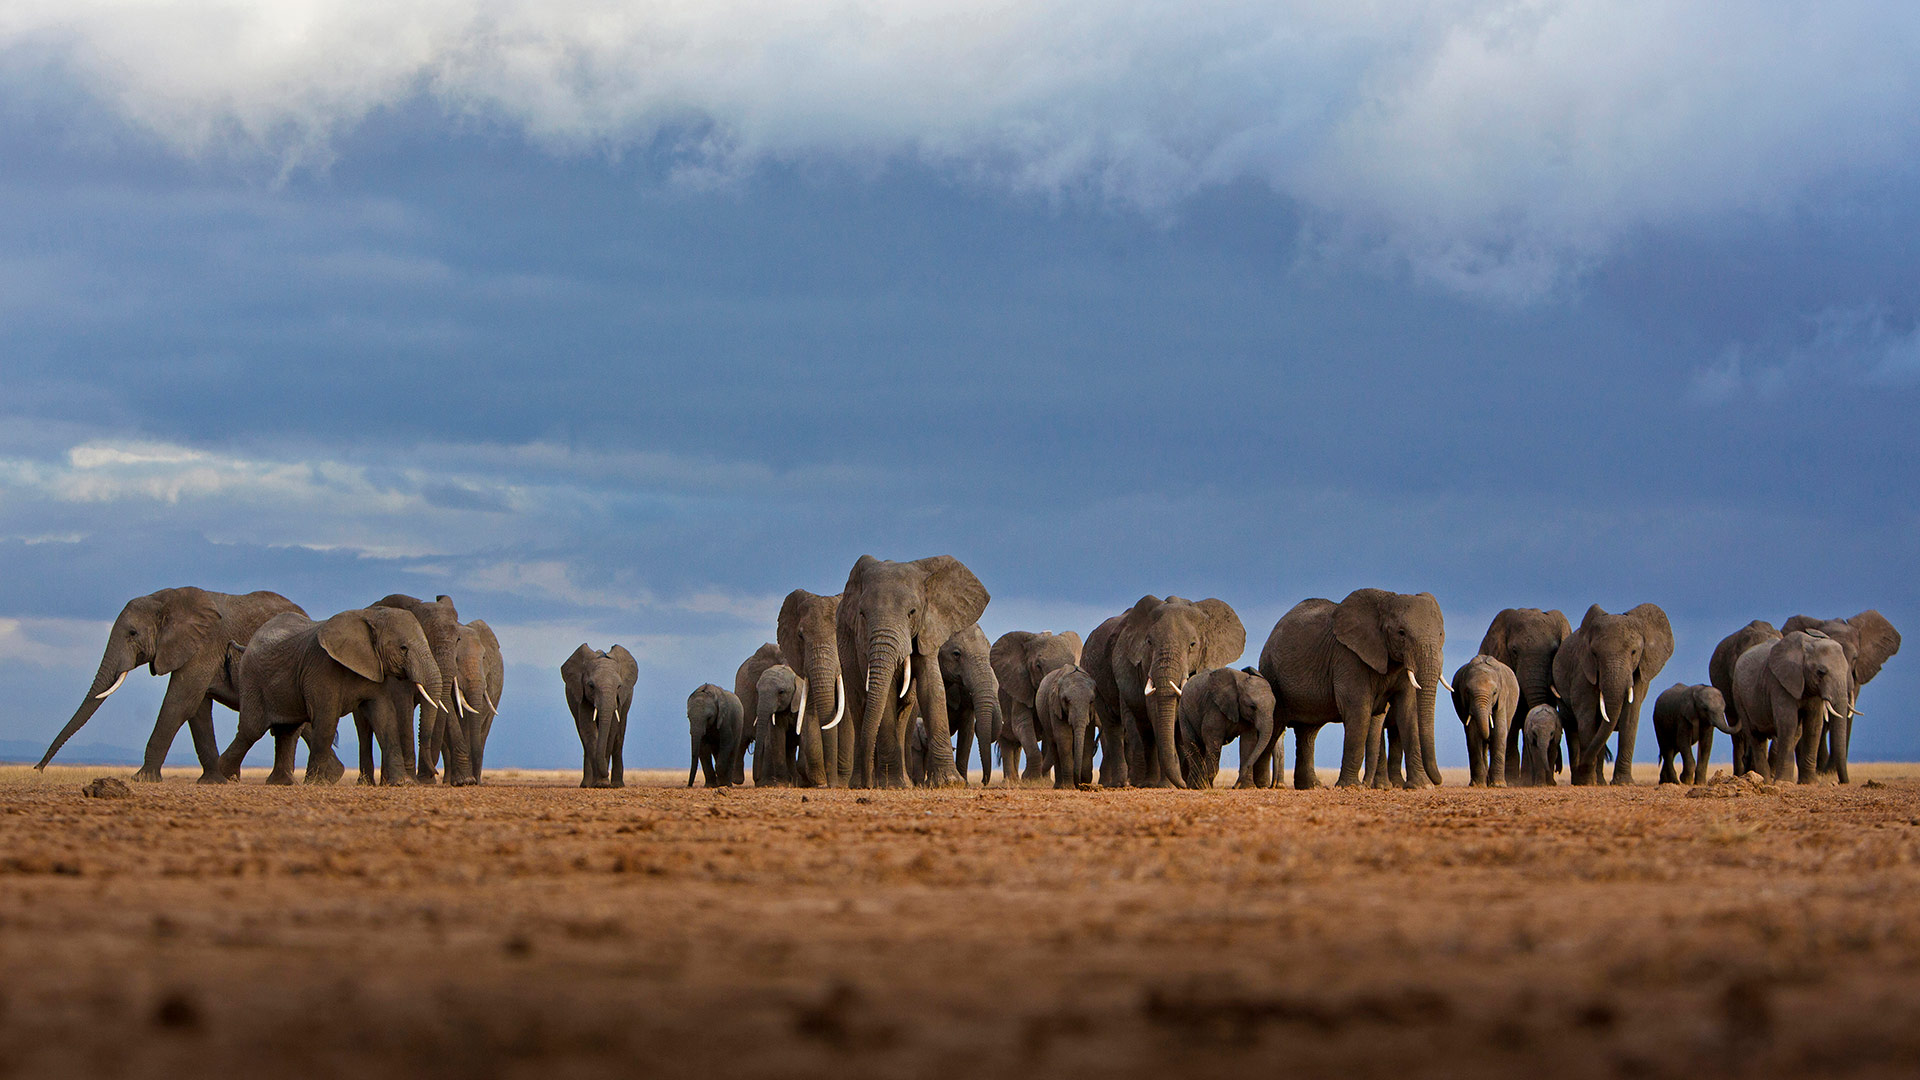 Elephants in Amboseli National Park, Kenya (© Adam Bannister/Offset)(Bing United States)